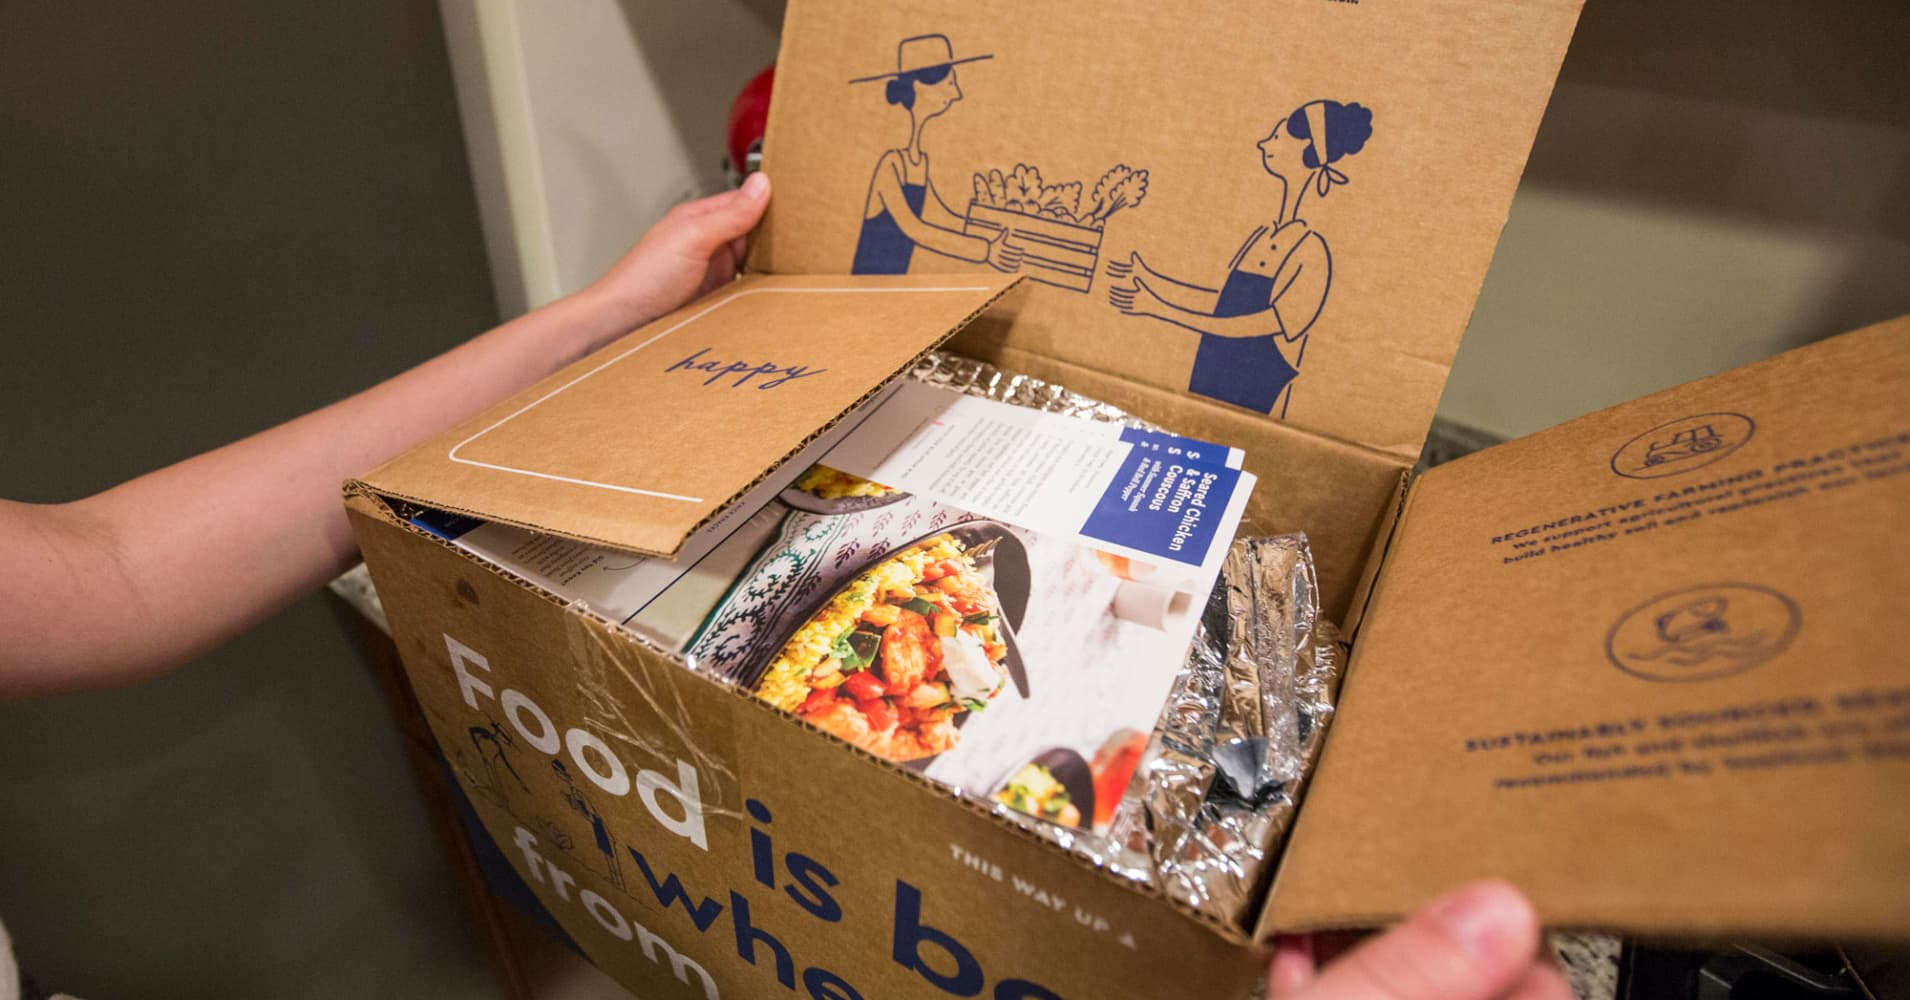 Trump wants to deliver Blue Apron-style 'America's Harvest Box' to food-stamp recipients